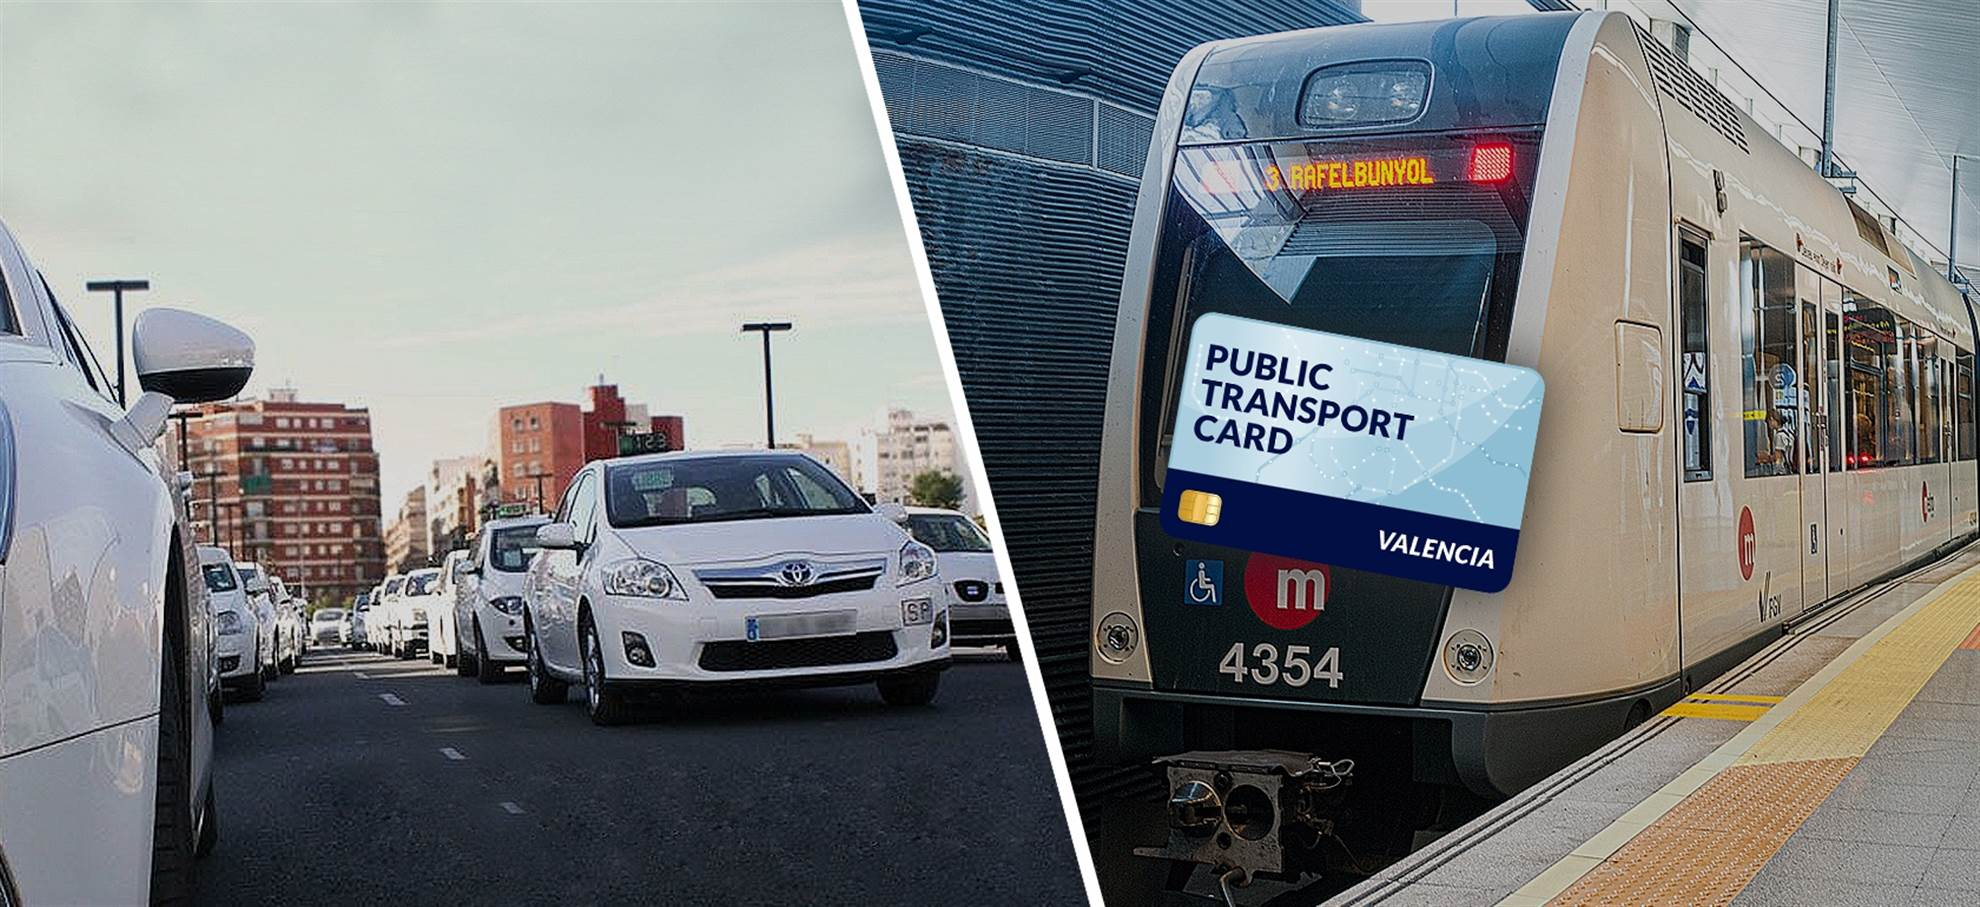 Valencia Public Transportation Card (including Private Airport Taxi)